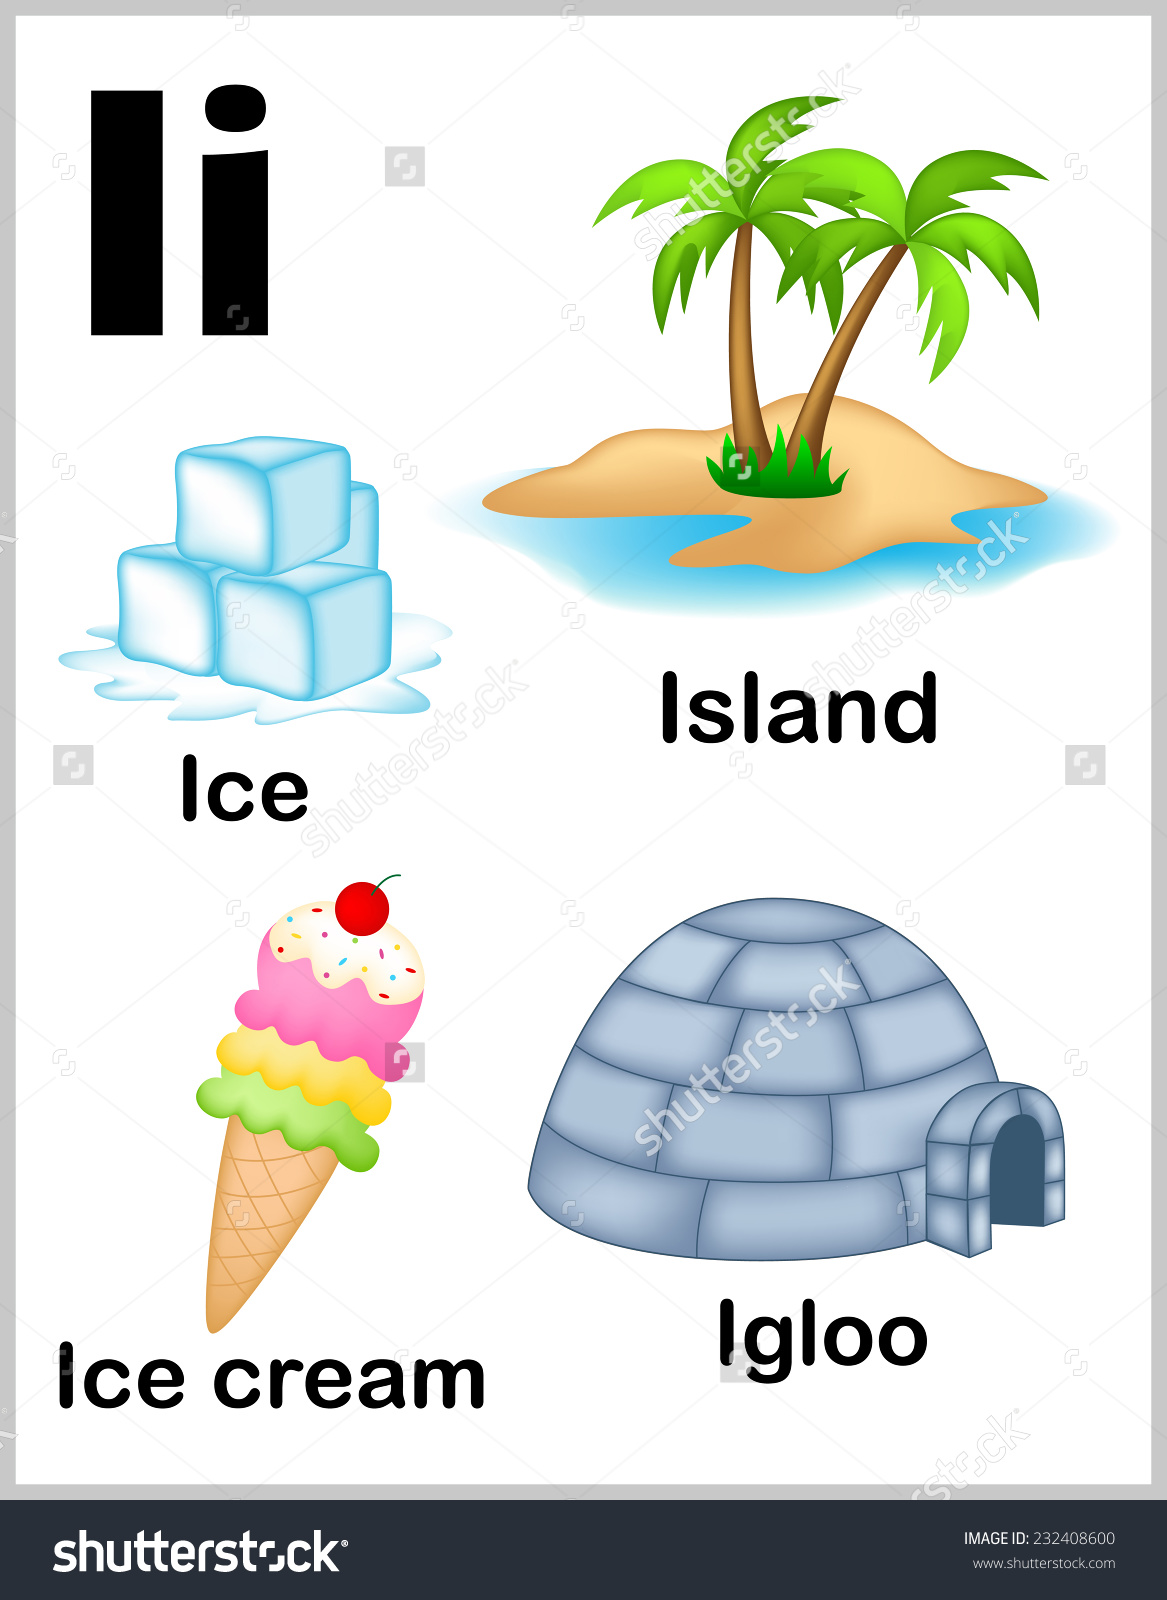 Preschool Words That Start With I